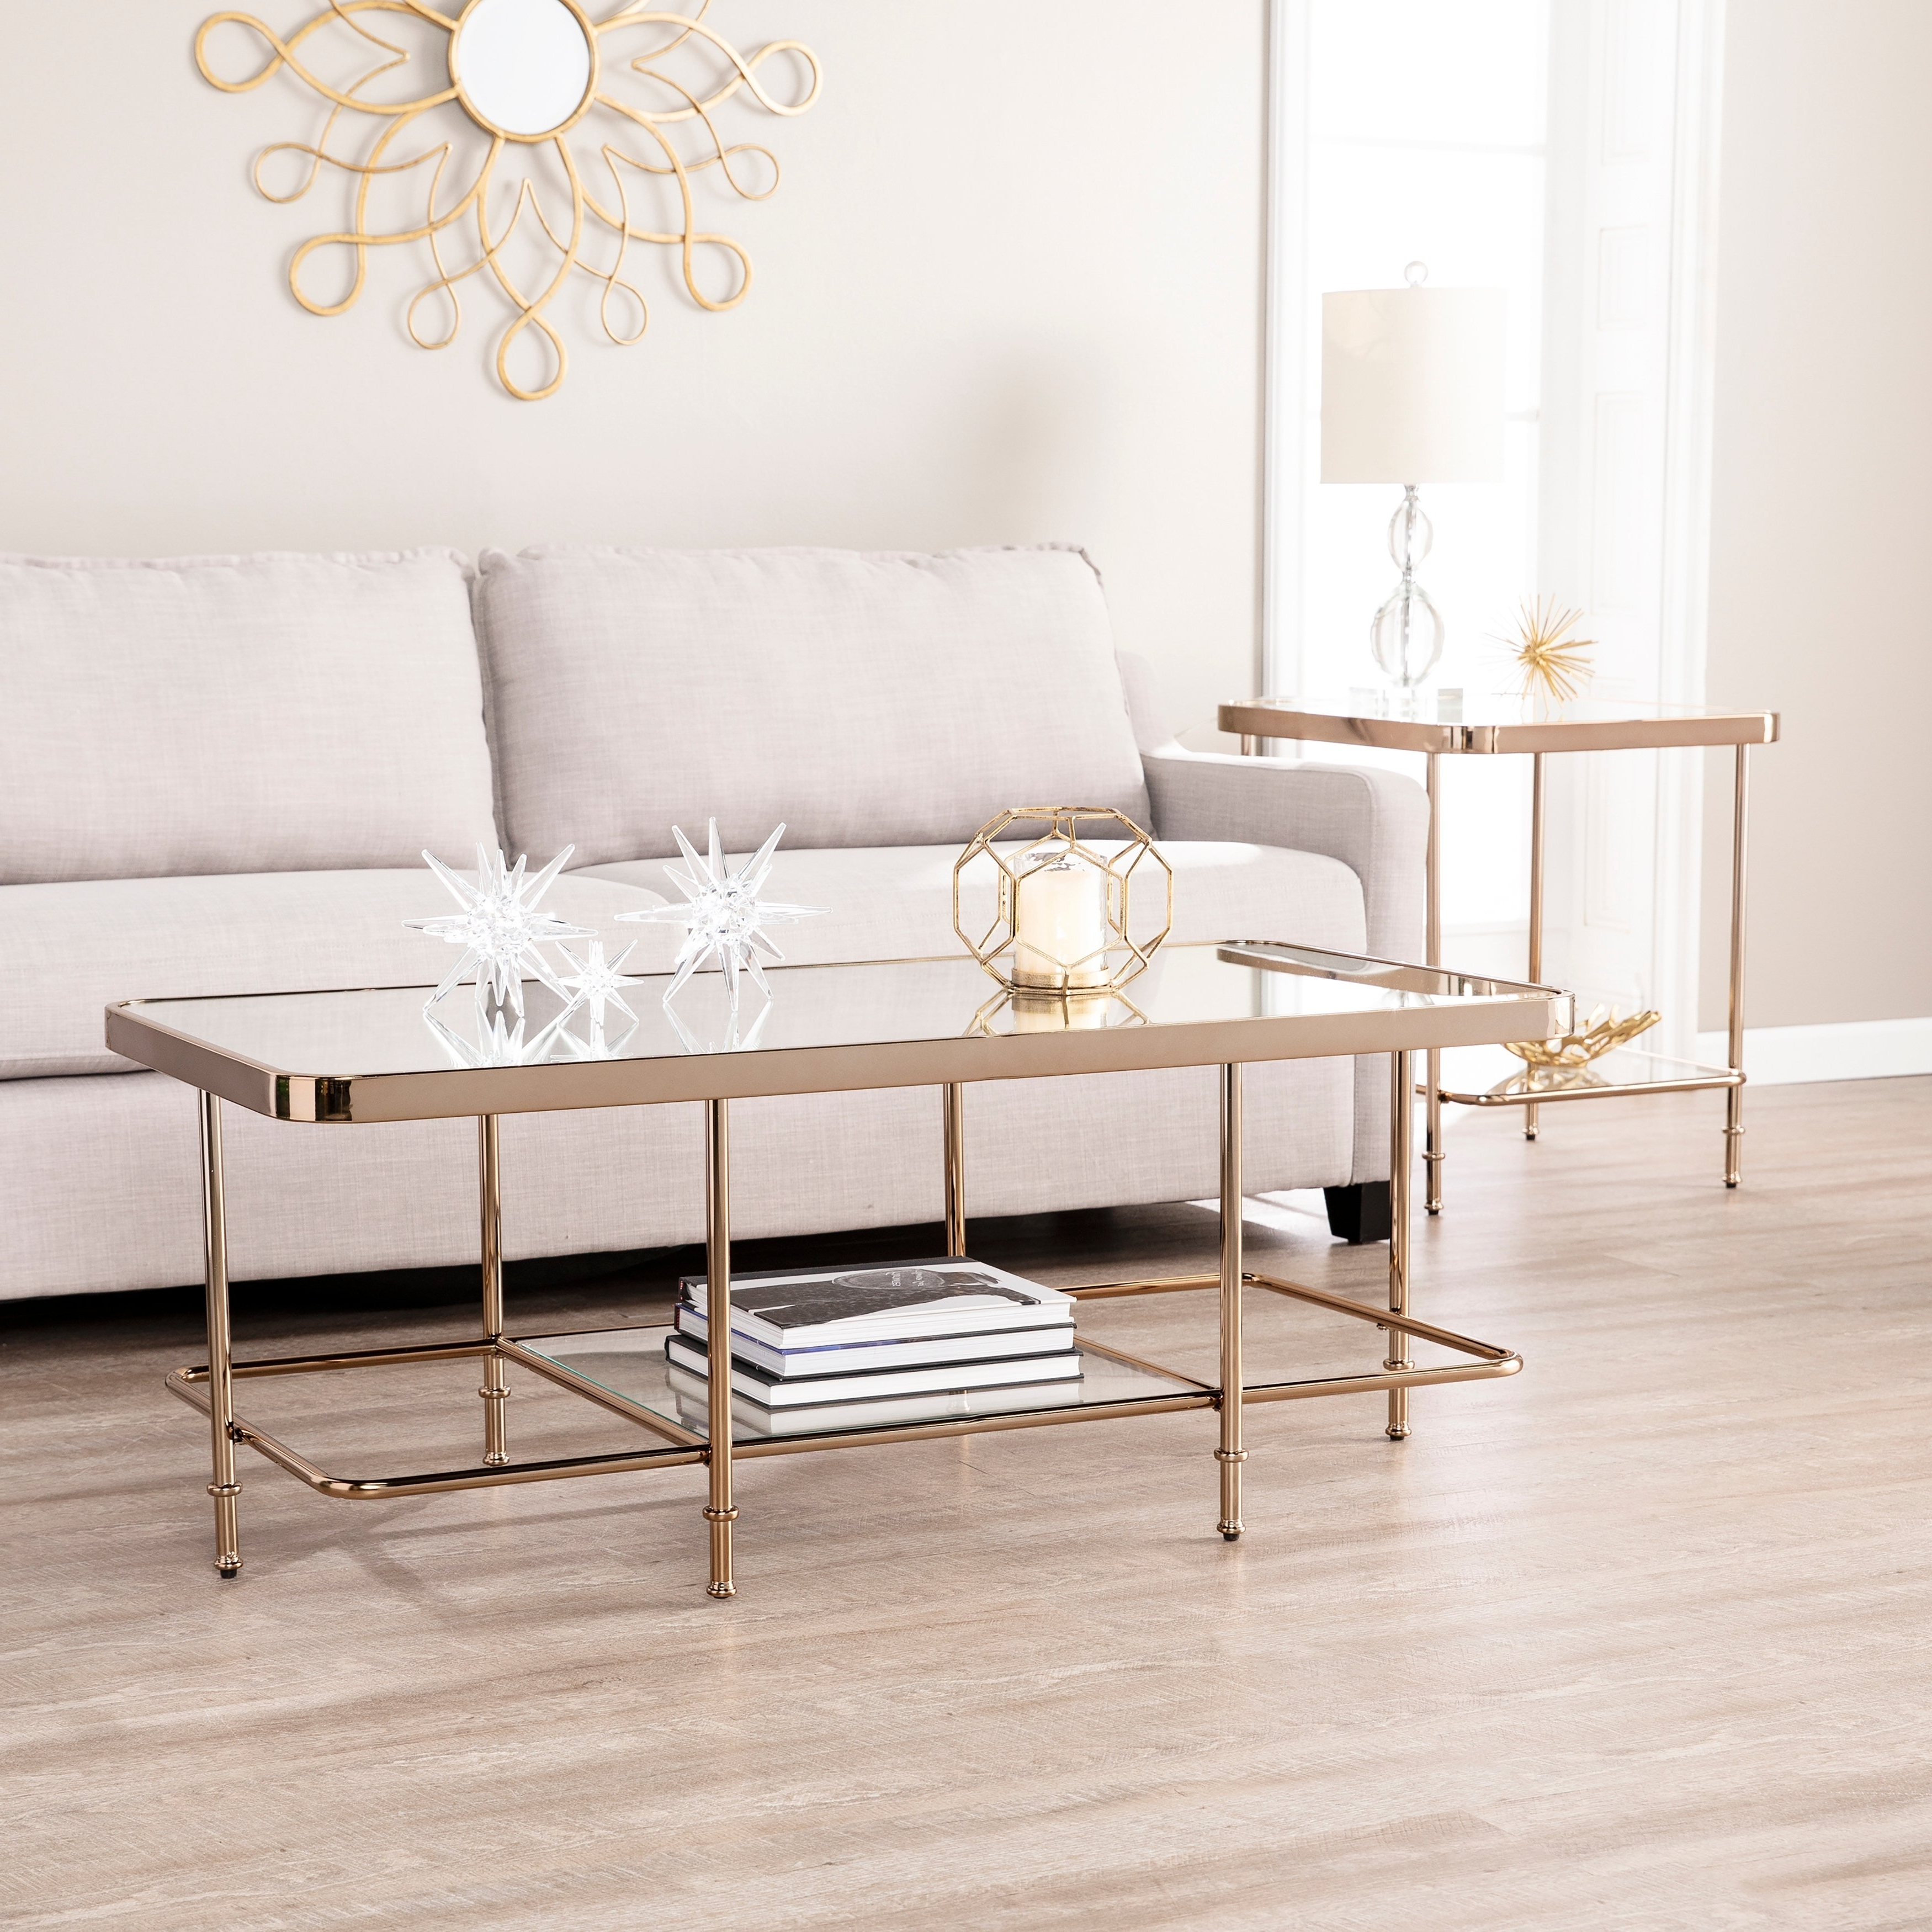 Popular Shop Harper Blvd Sanmeyer Champagne Mirrored Cocktail Table – Free With Harper Down Oversized Sofa Chairs (View 18 of 20)